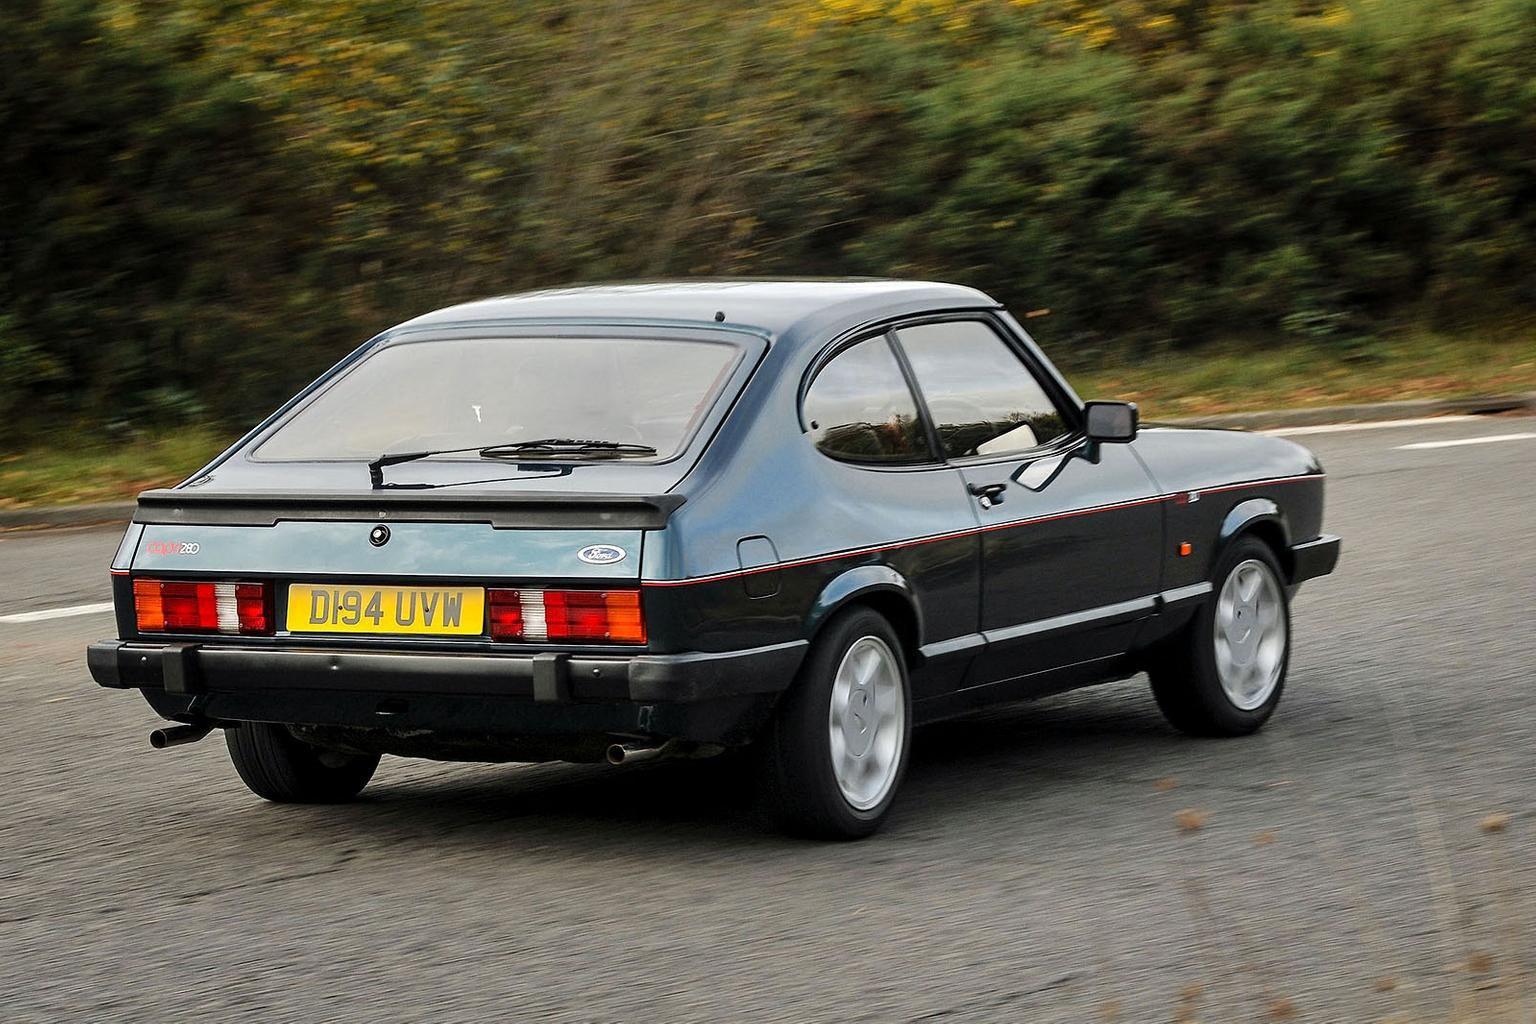 ford capri rewind wednesday what car. Black Bedroom Furniture Sets. Home Design Ideas